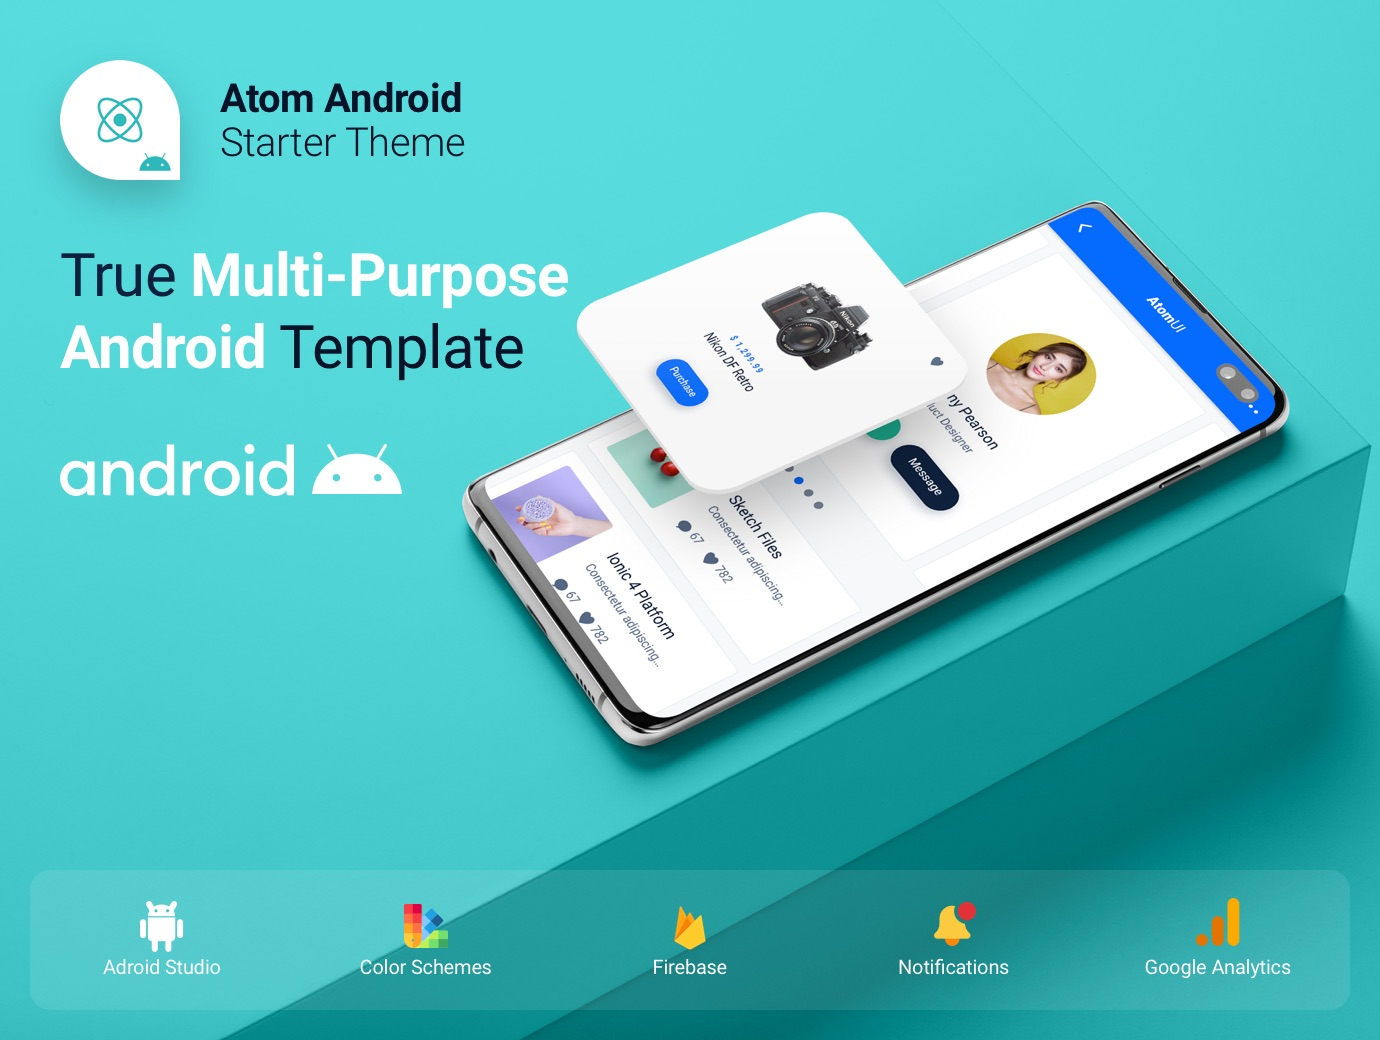 Atom Ui Kit - Android Kotlin Starter Mobile App Theme